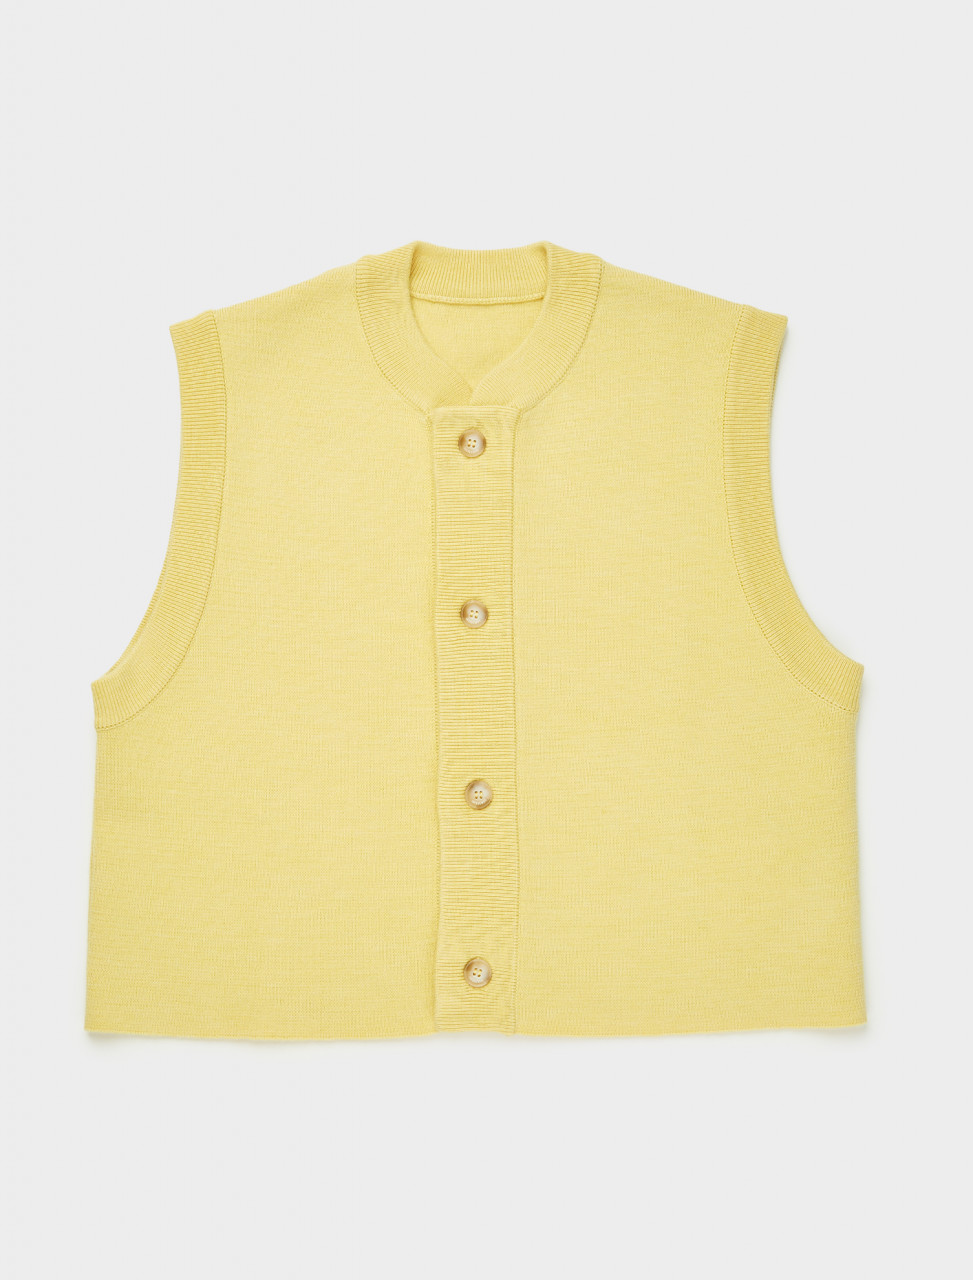 206KN07-206-200220 JACQUEMUS LE GILET EN MAILLE IN LIGHT YELLOW FRONT